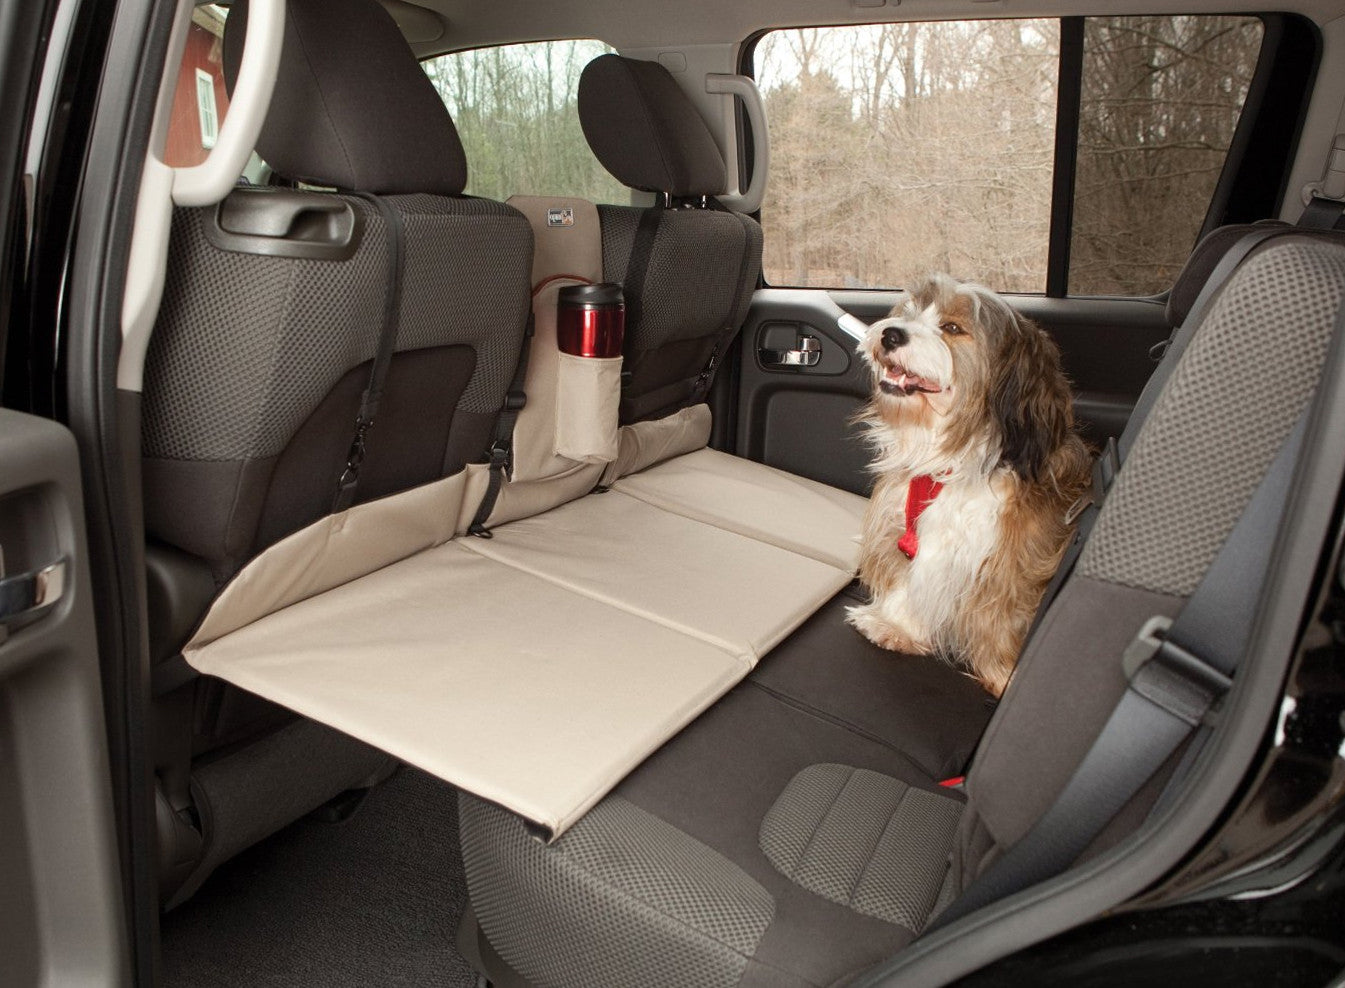 Kurgo Vehicle Rear Seat Extender Bridge for Dog Safety in Cars